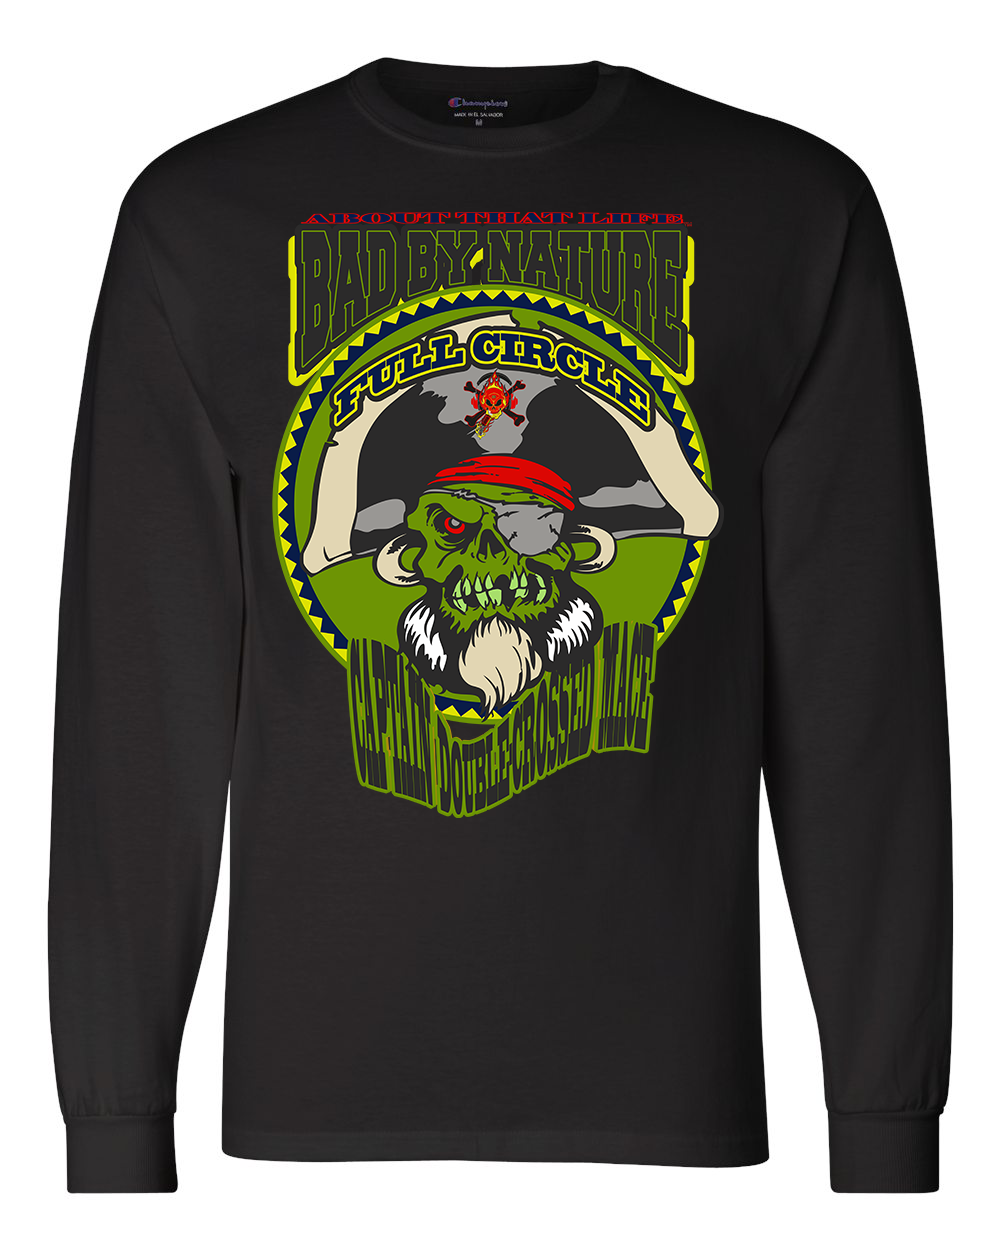 CAPTAIN DOUBLE-CROSSED MACE: MEN'S CHAMPION LONG SLEEVE SHIRT